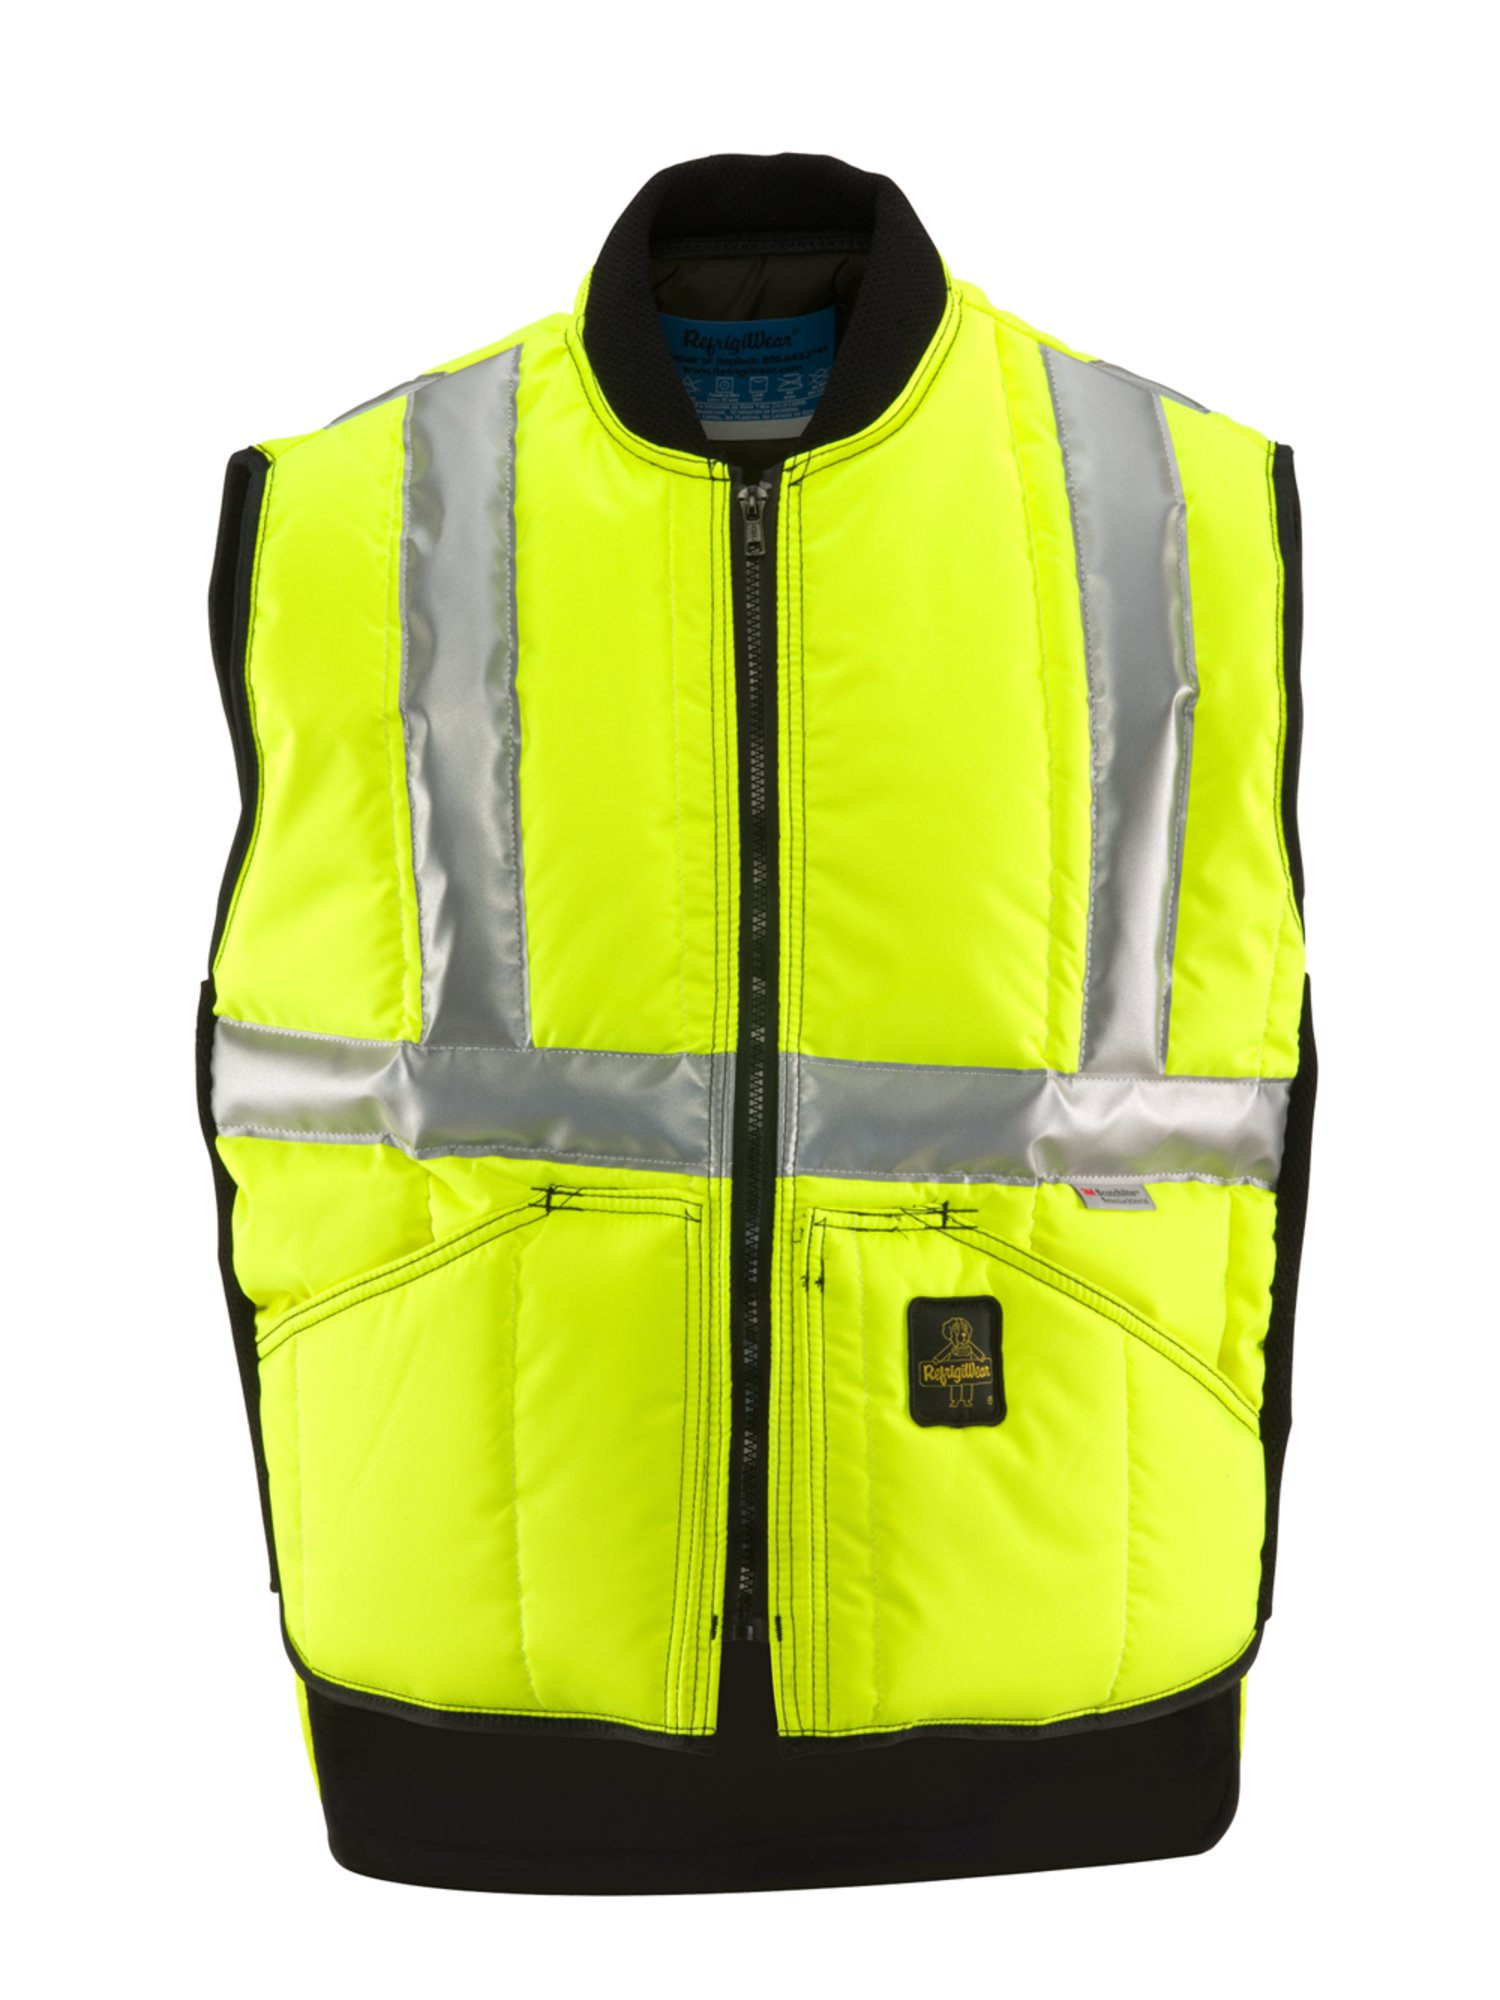 RefrigiWear Men's Insulated Iron-Tuff Hivis Safety Vest - ANSI Class 2 High Visibility Lime with Reflective Tape 2XL by RefrigiWear (Image #2)